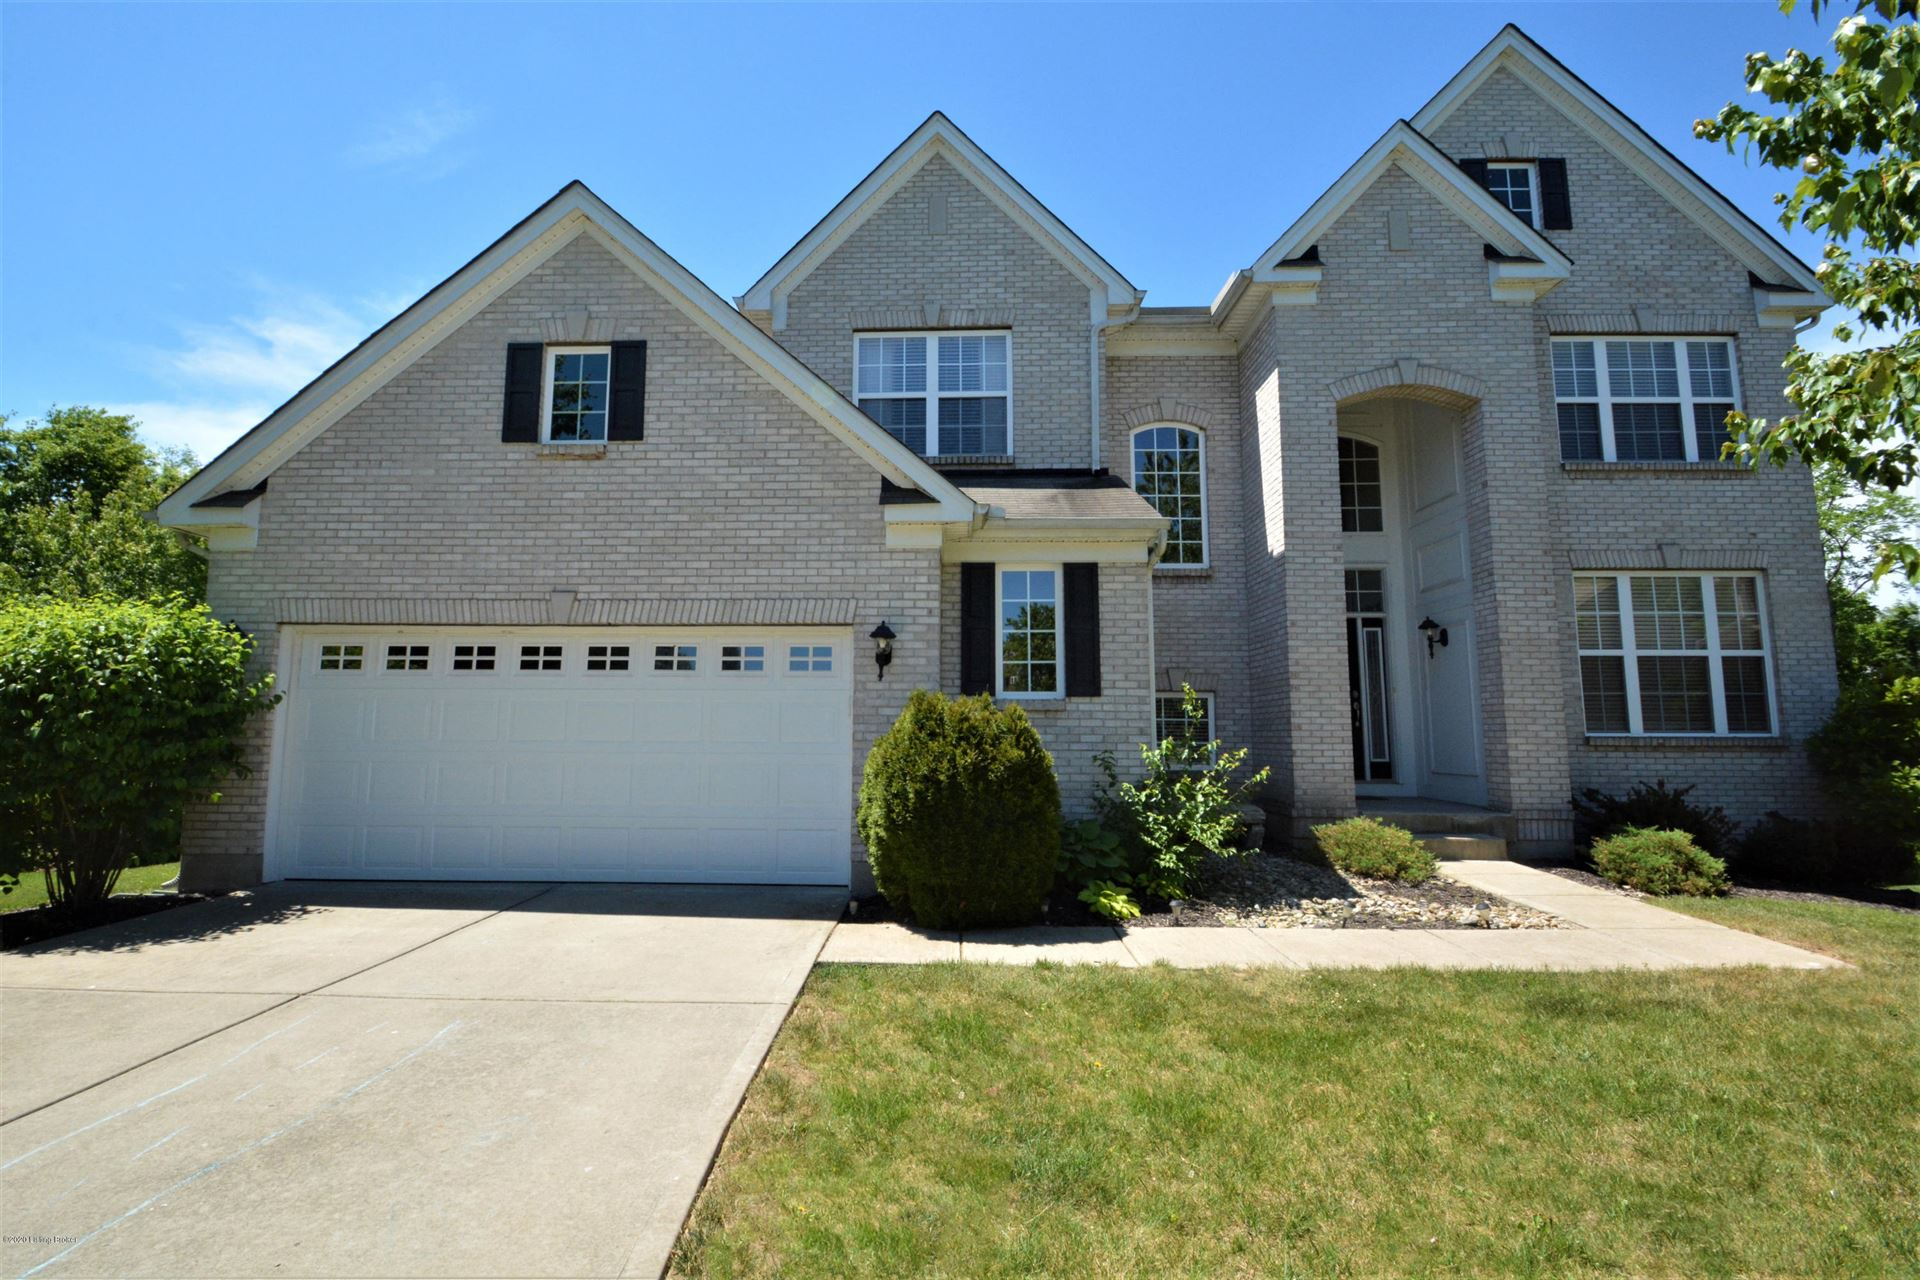 Property Image Of 762 Windmill Dr In Independence, Ky